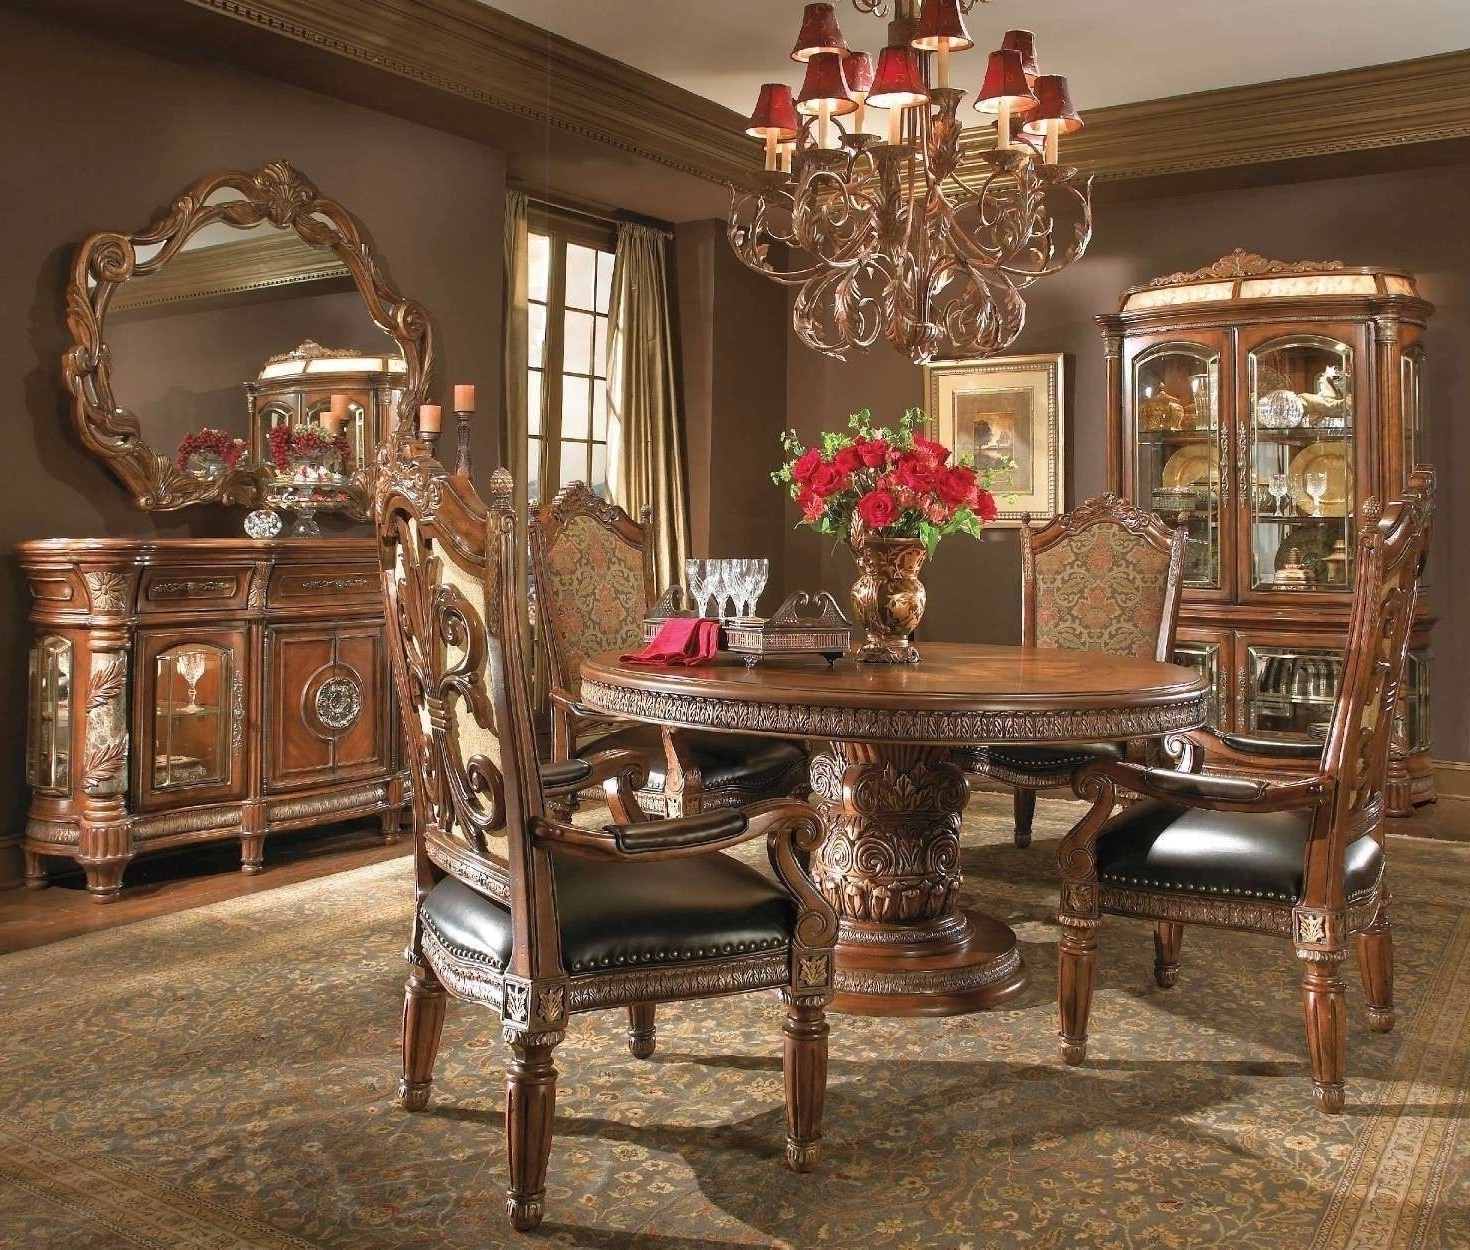 2018 Valencia 3 Piece Counter Sets With Bench In Michael Amini Villa Valencia Traditional Round Oval Table Chairs (View 1 of 25)